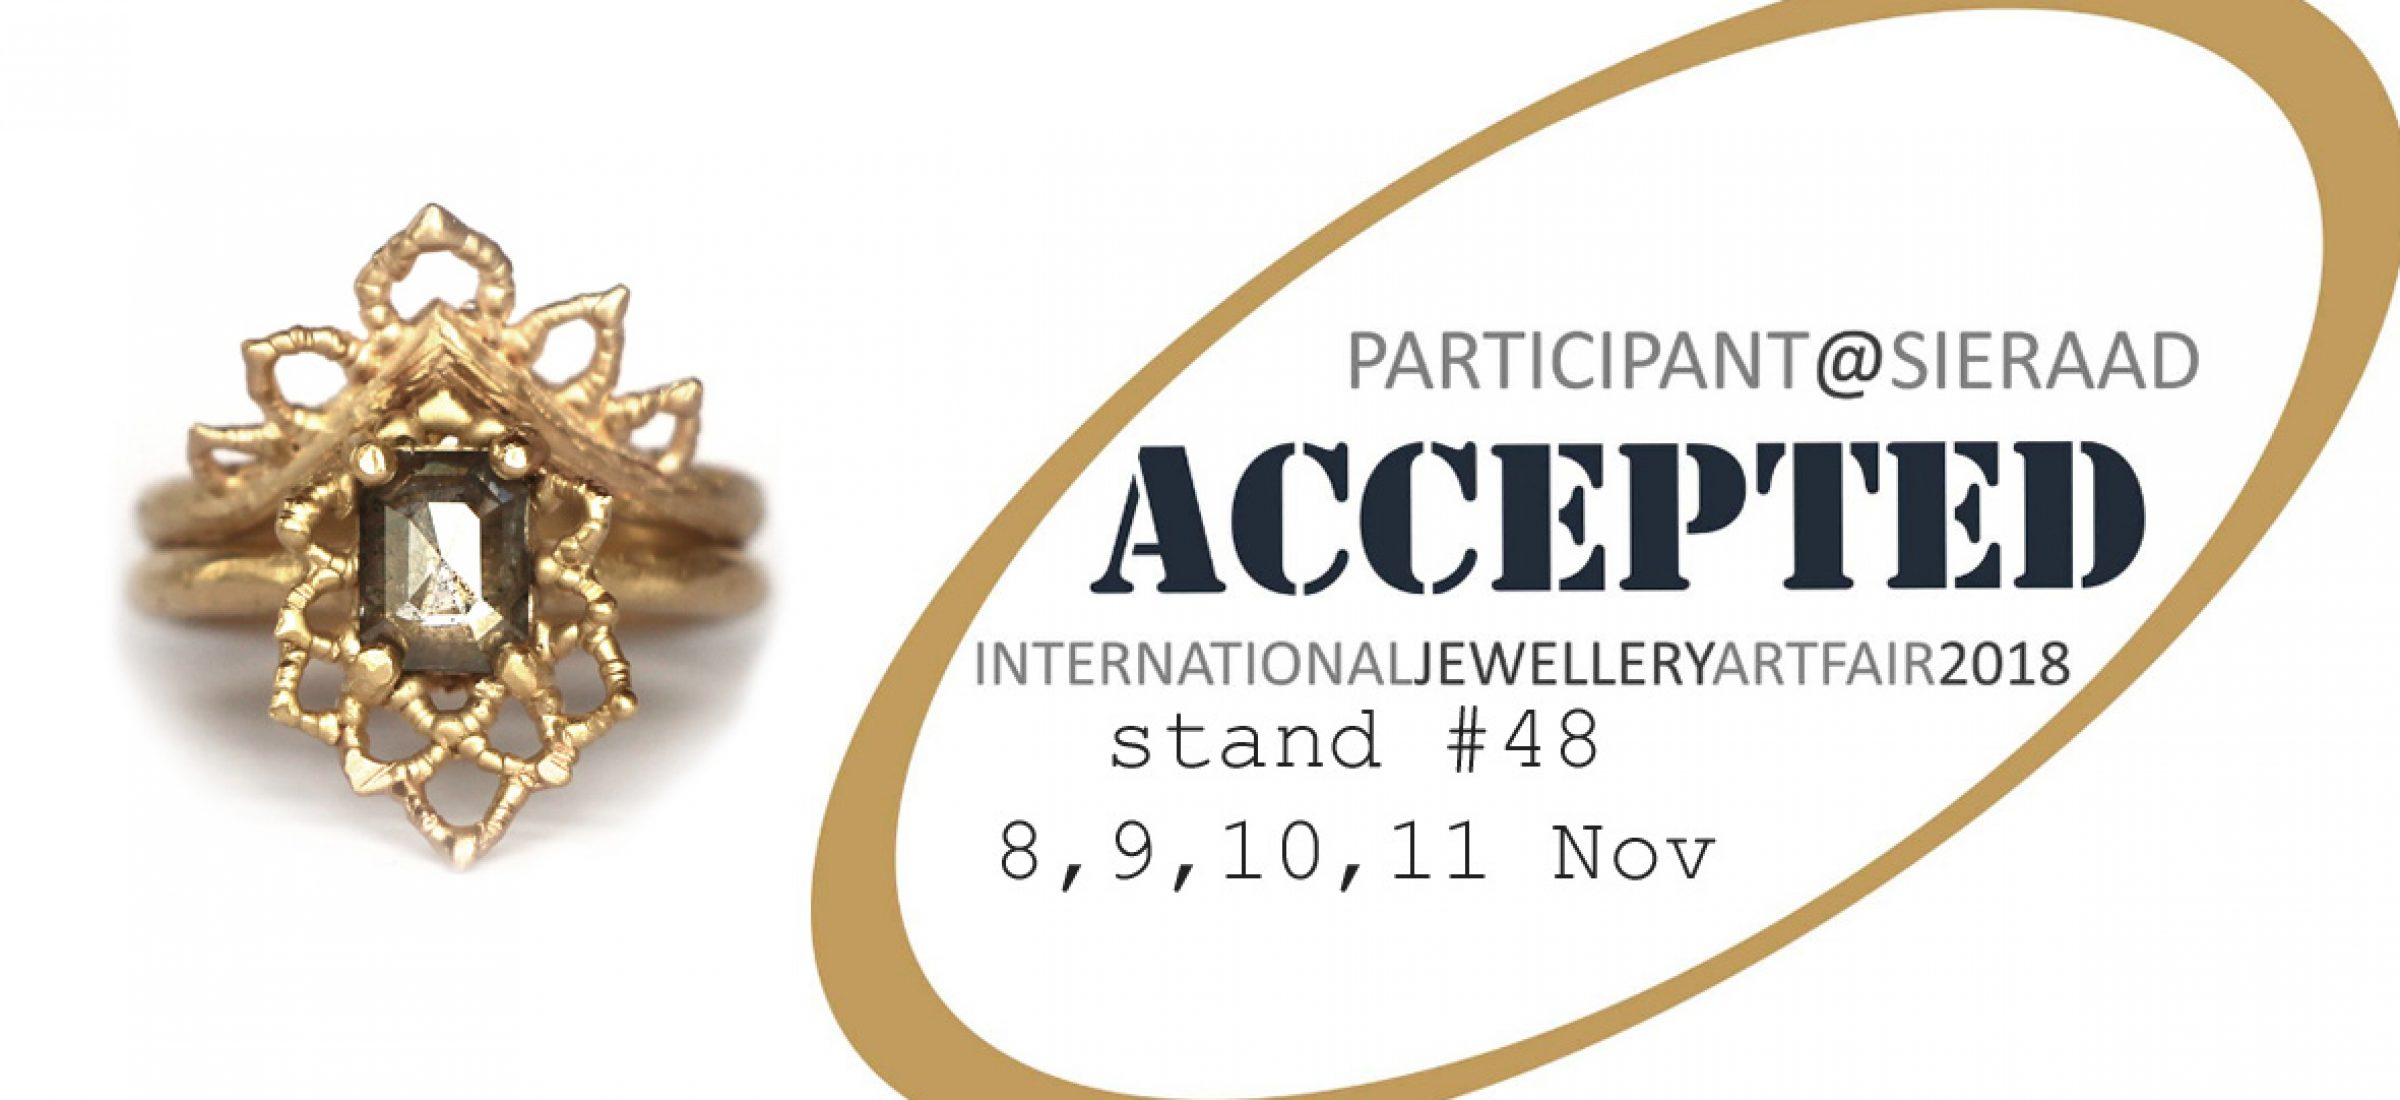 sieraad-art-jewellery-fair